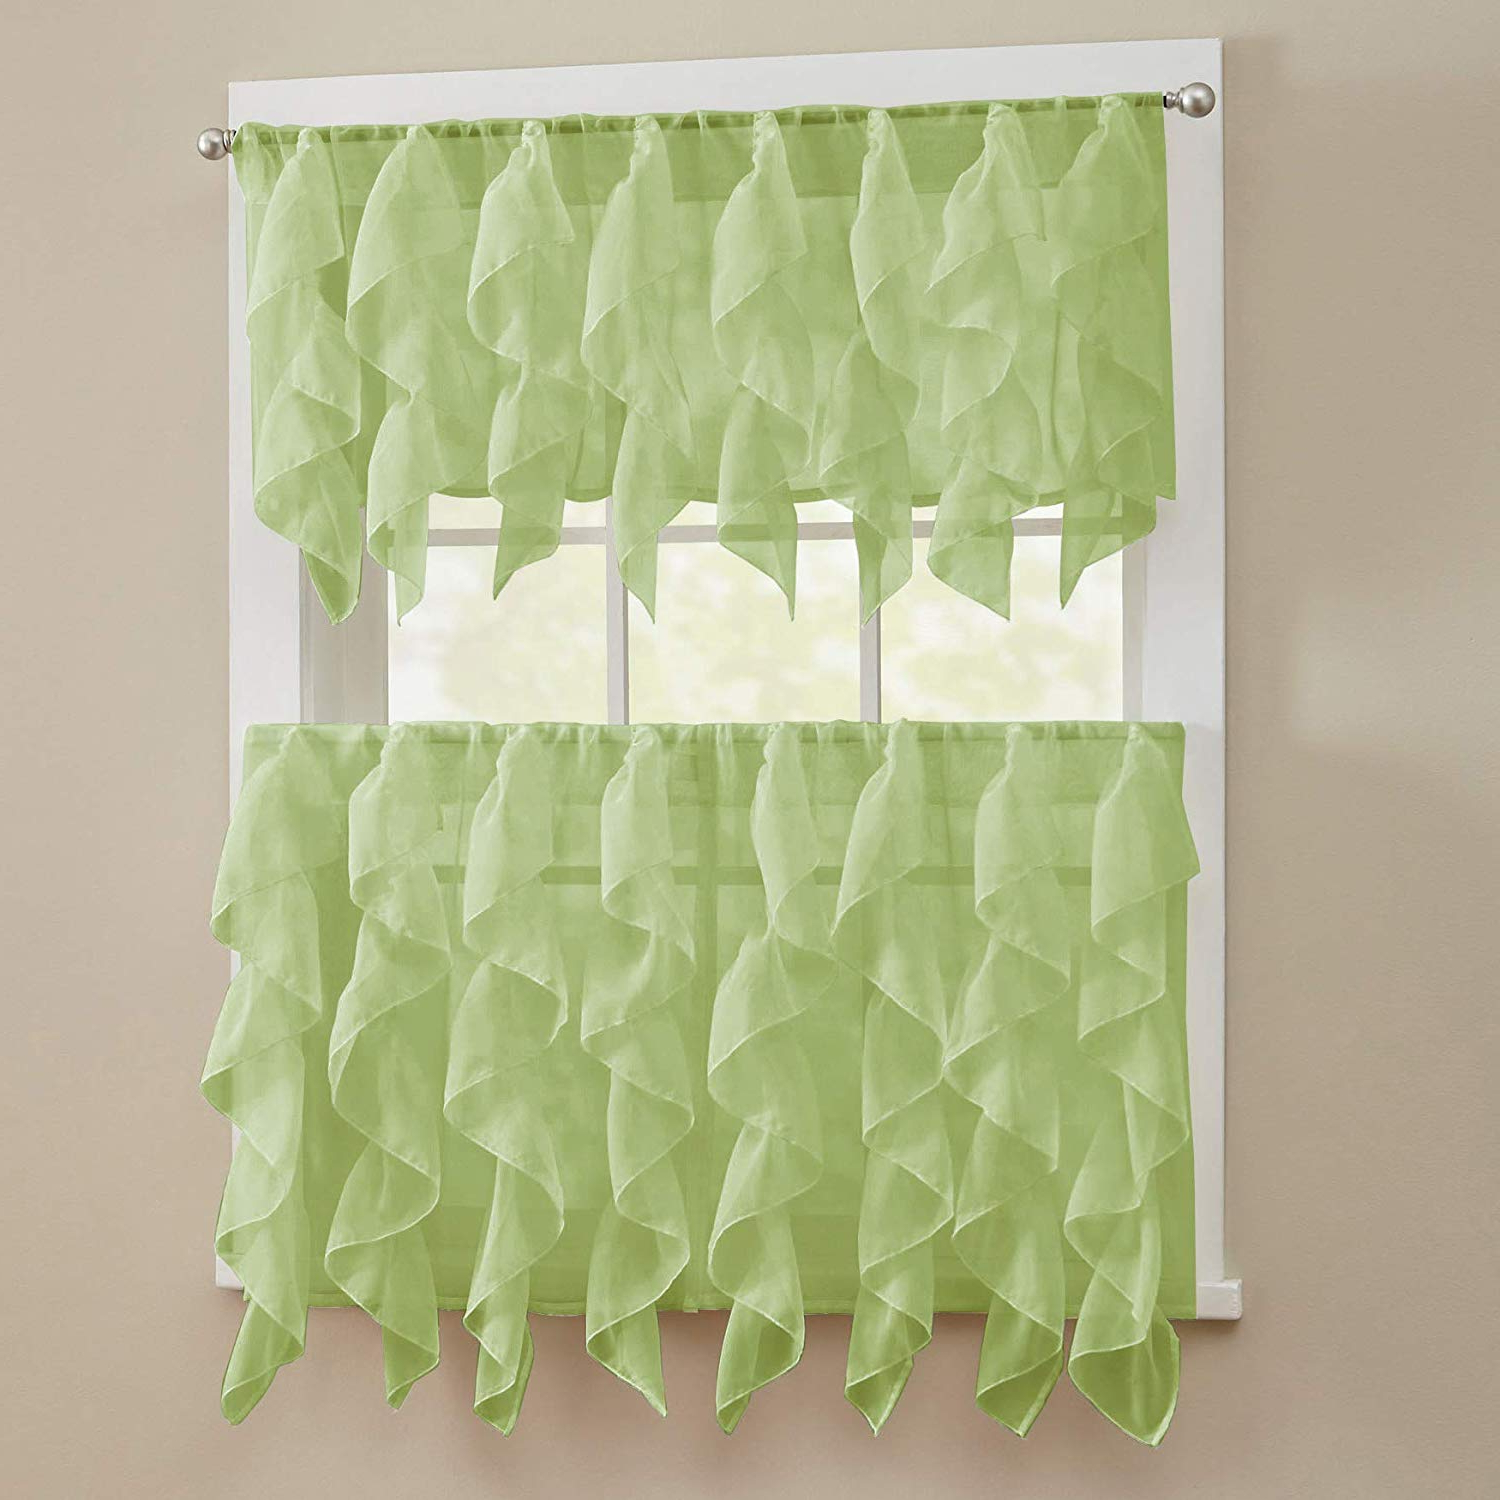 "Most Recent Sweet Home Collection 3 Piece Kitchen Curtain Set Sheet Vertical Cascading Waterfall Ruffle Includes Valance & Choice Of 24"" Or 36"" Teir Pair, Tier, With Regard To Maize Vertical Ruffled Waterfall Valance And Curtain Tiers (View 8 of 20)"